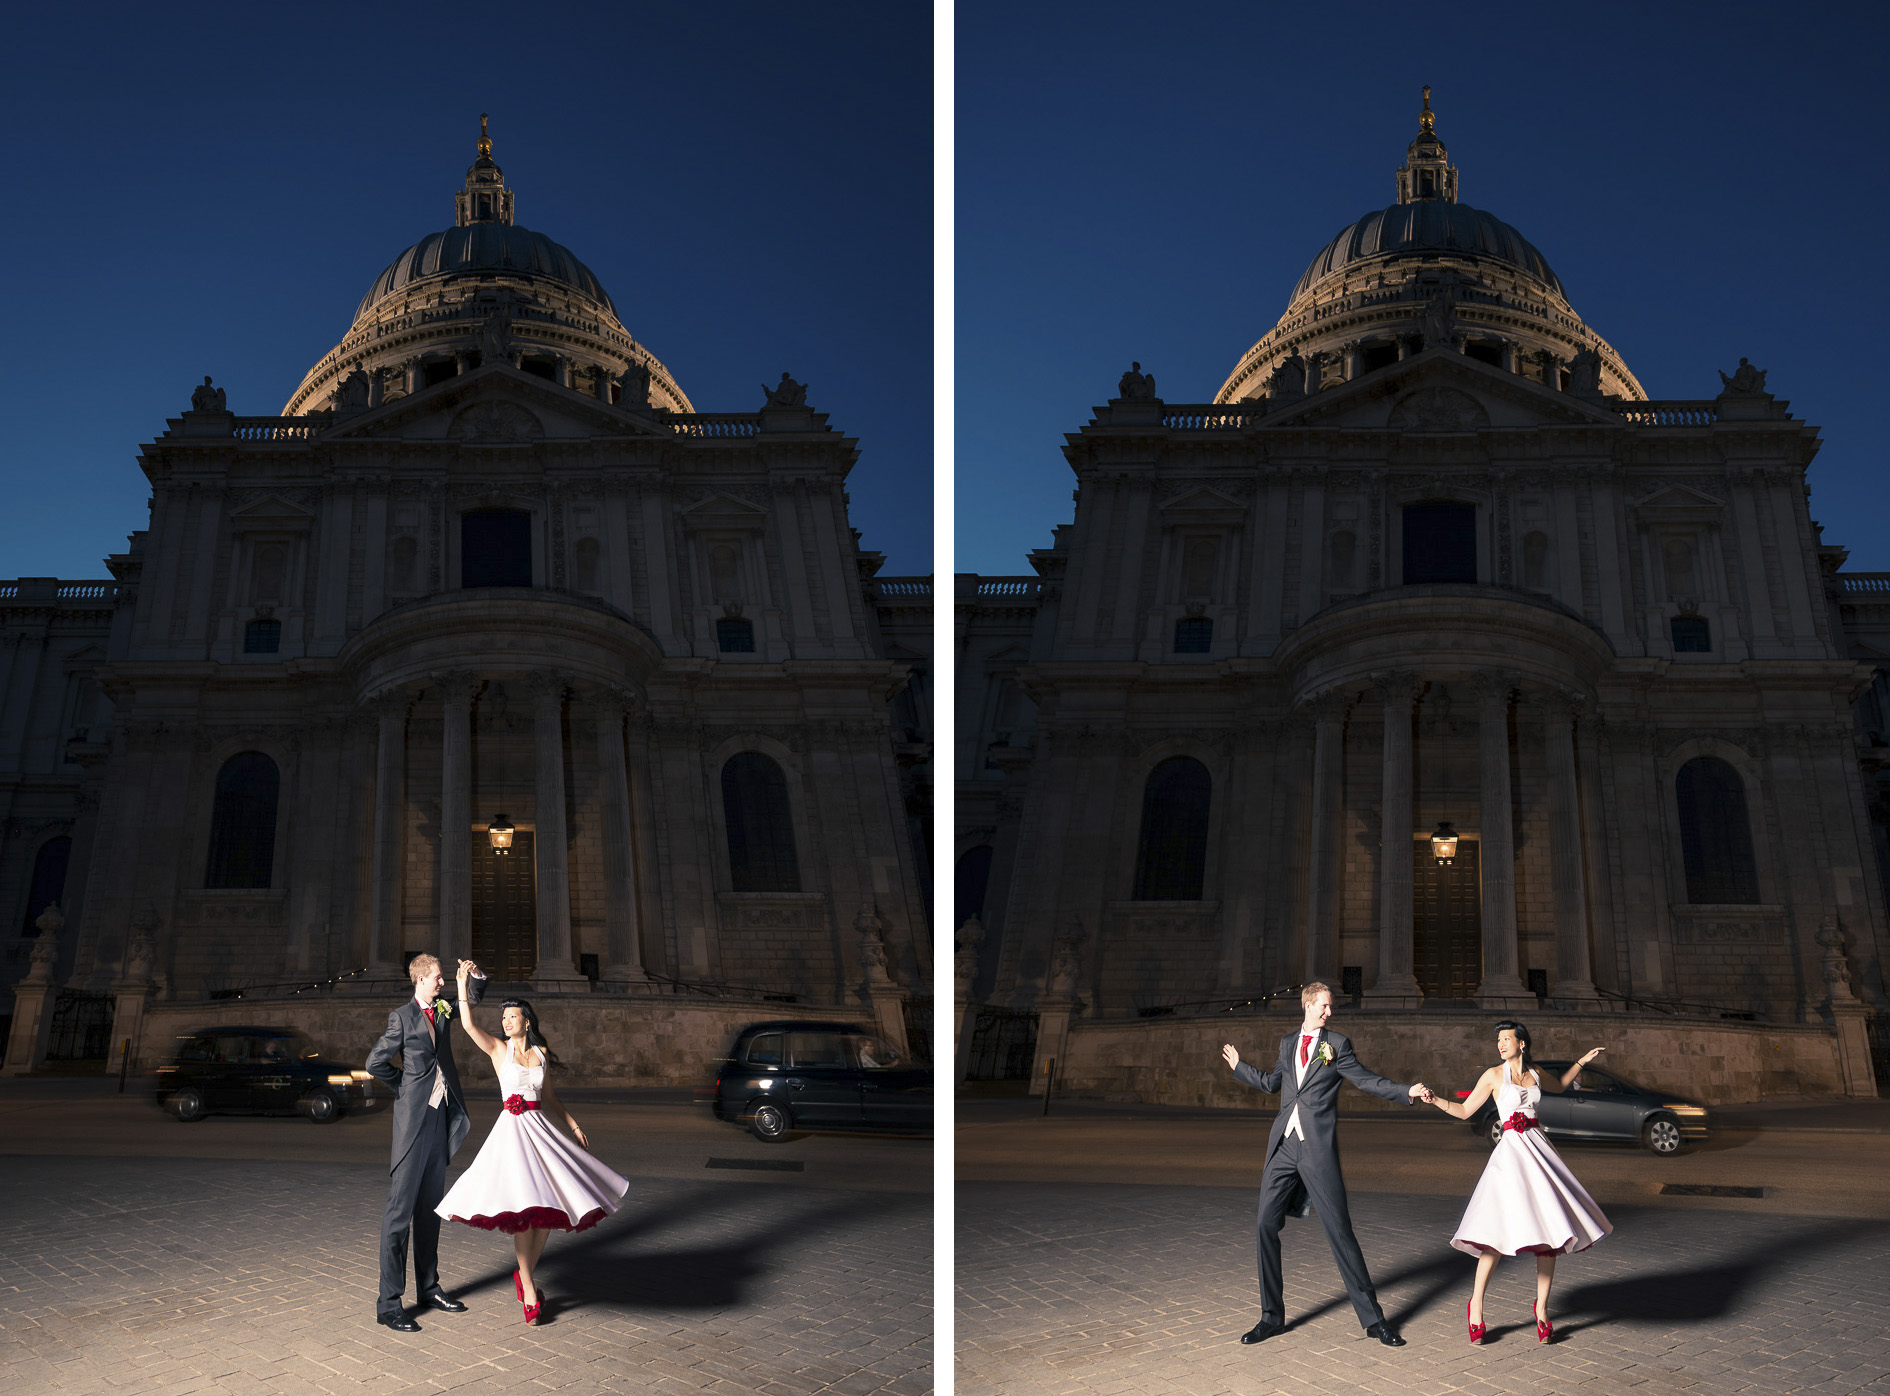 st-pauls-cathedral-london-wedding-photography-night-shot-christine-05